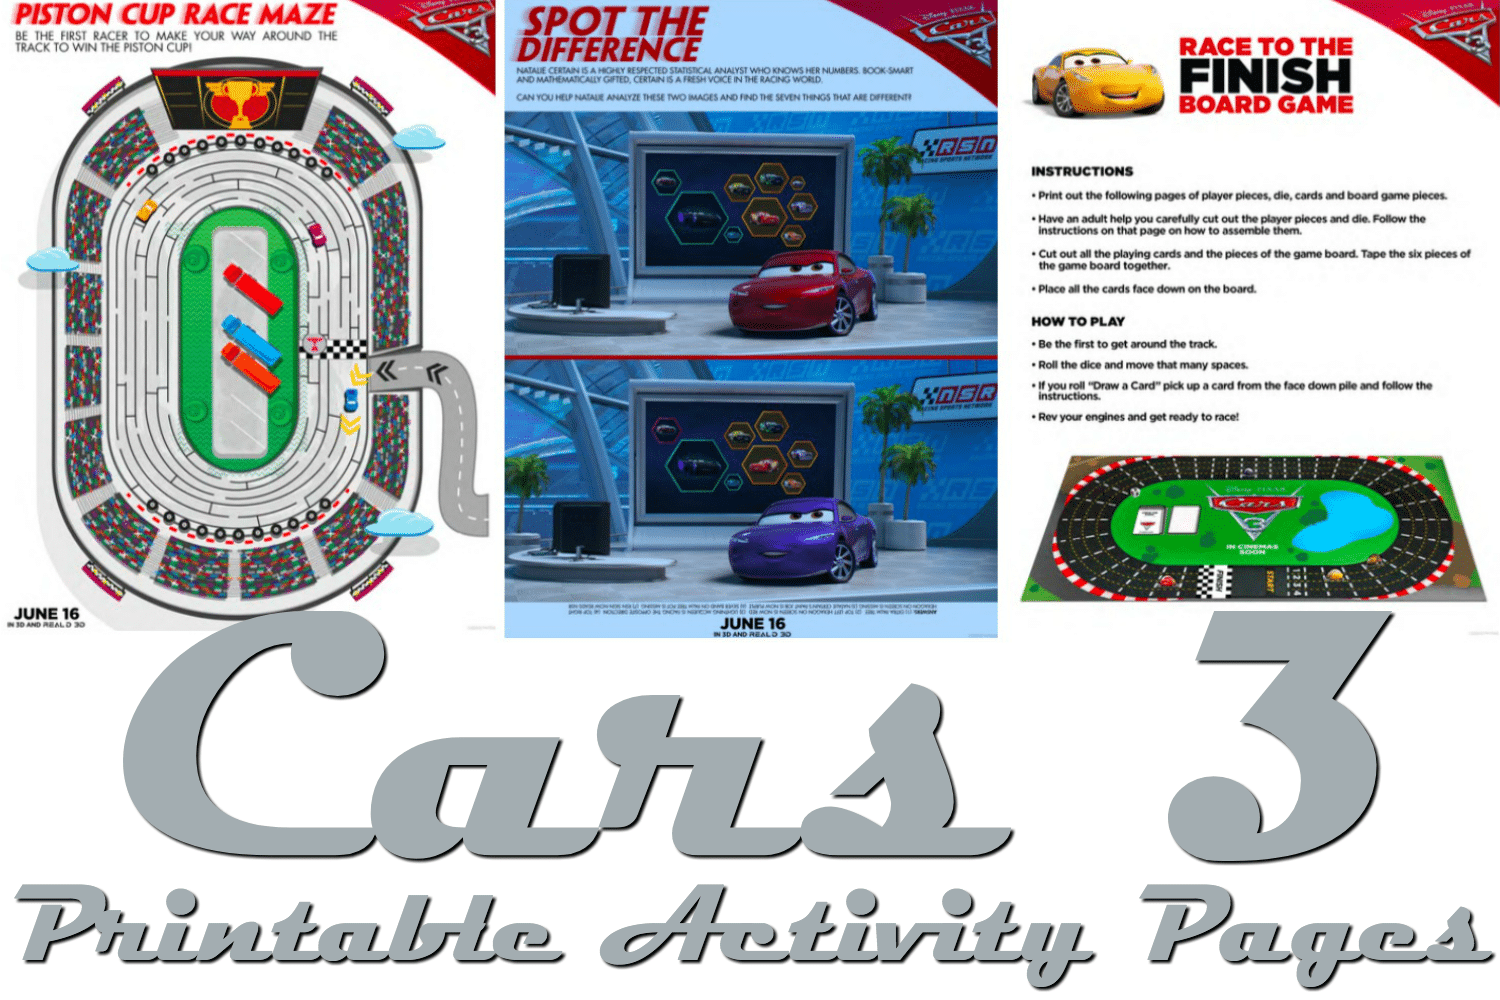 Race track printable board games - Race Track Printable Board Games 43